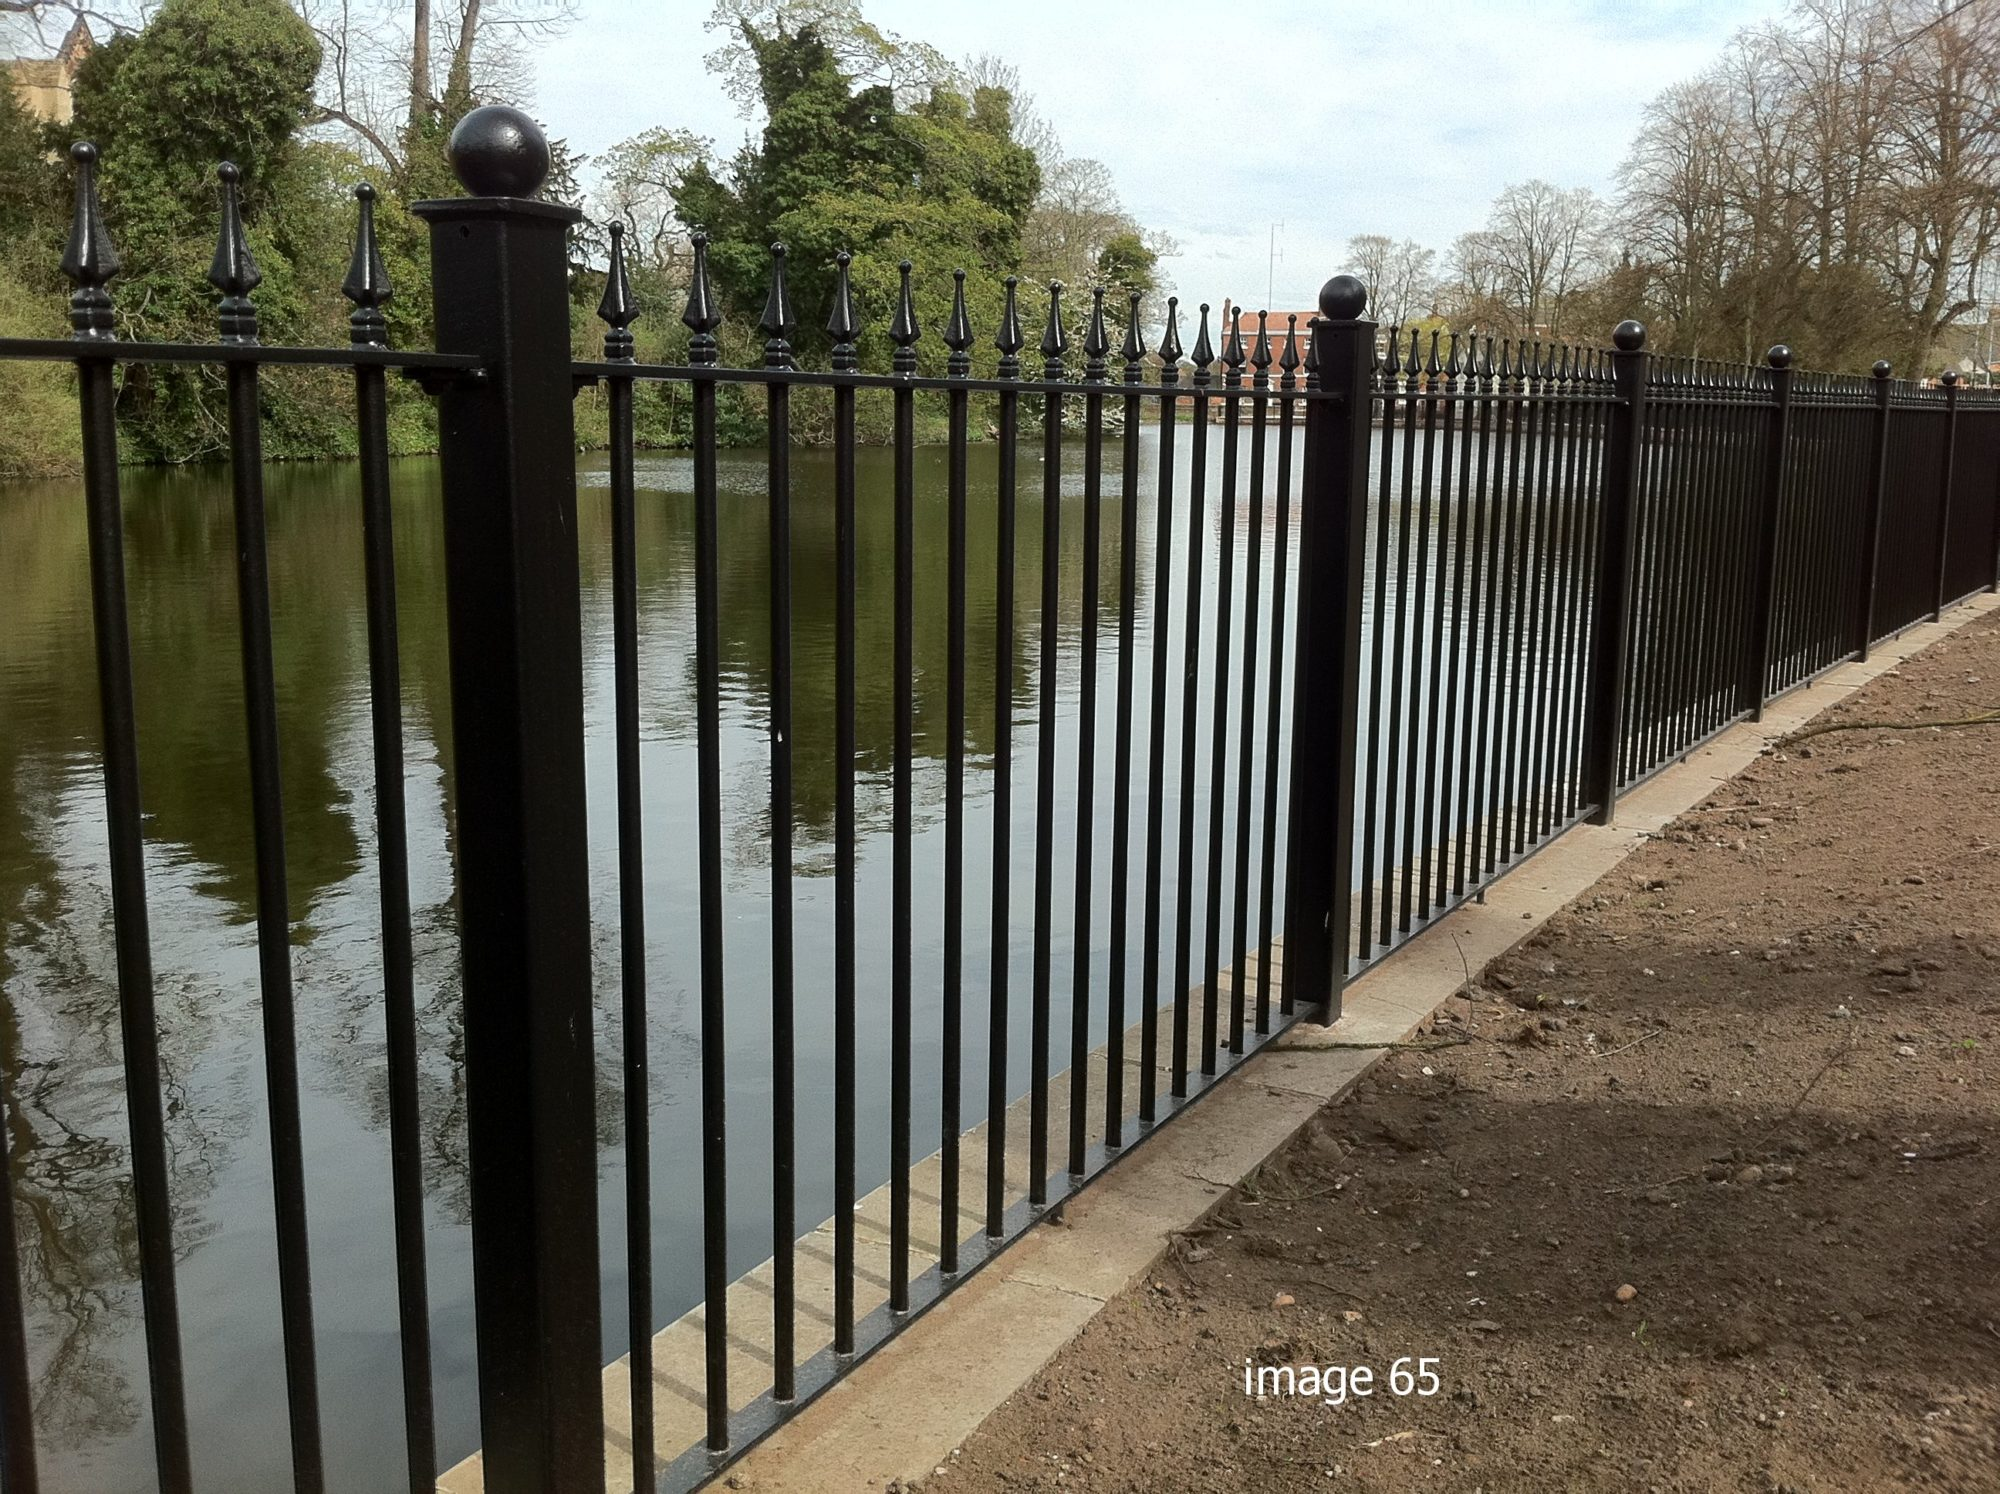 Decorative vertical bar railings by the riverside